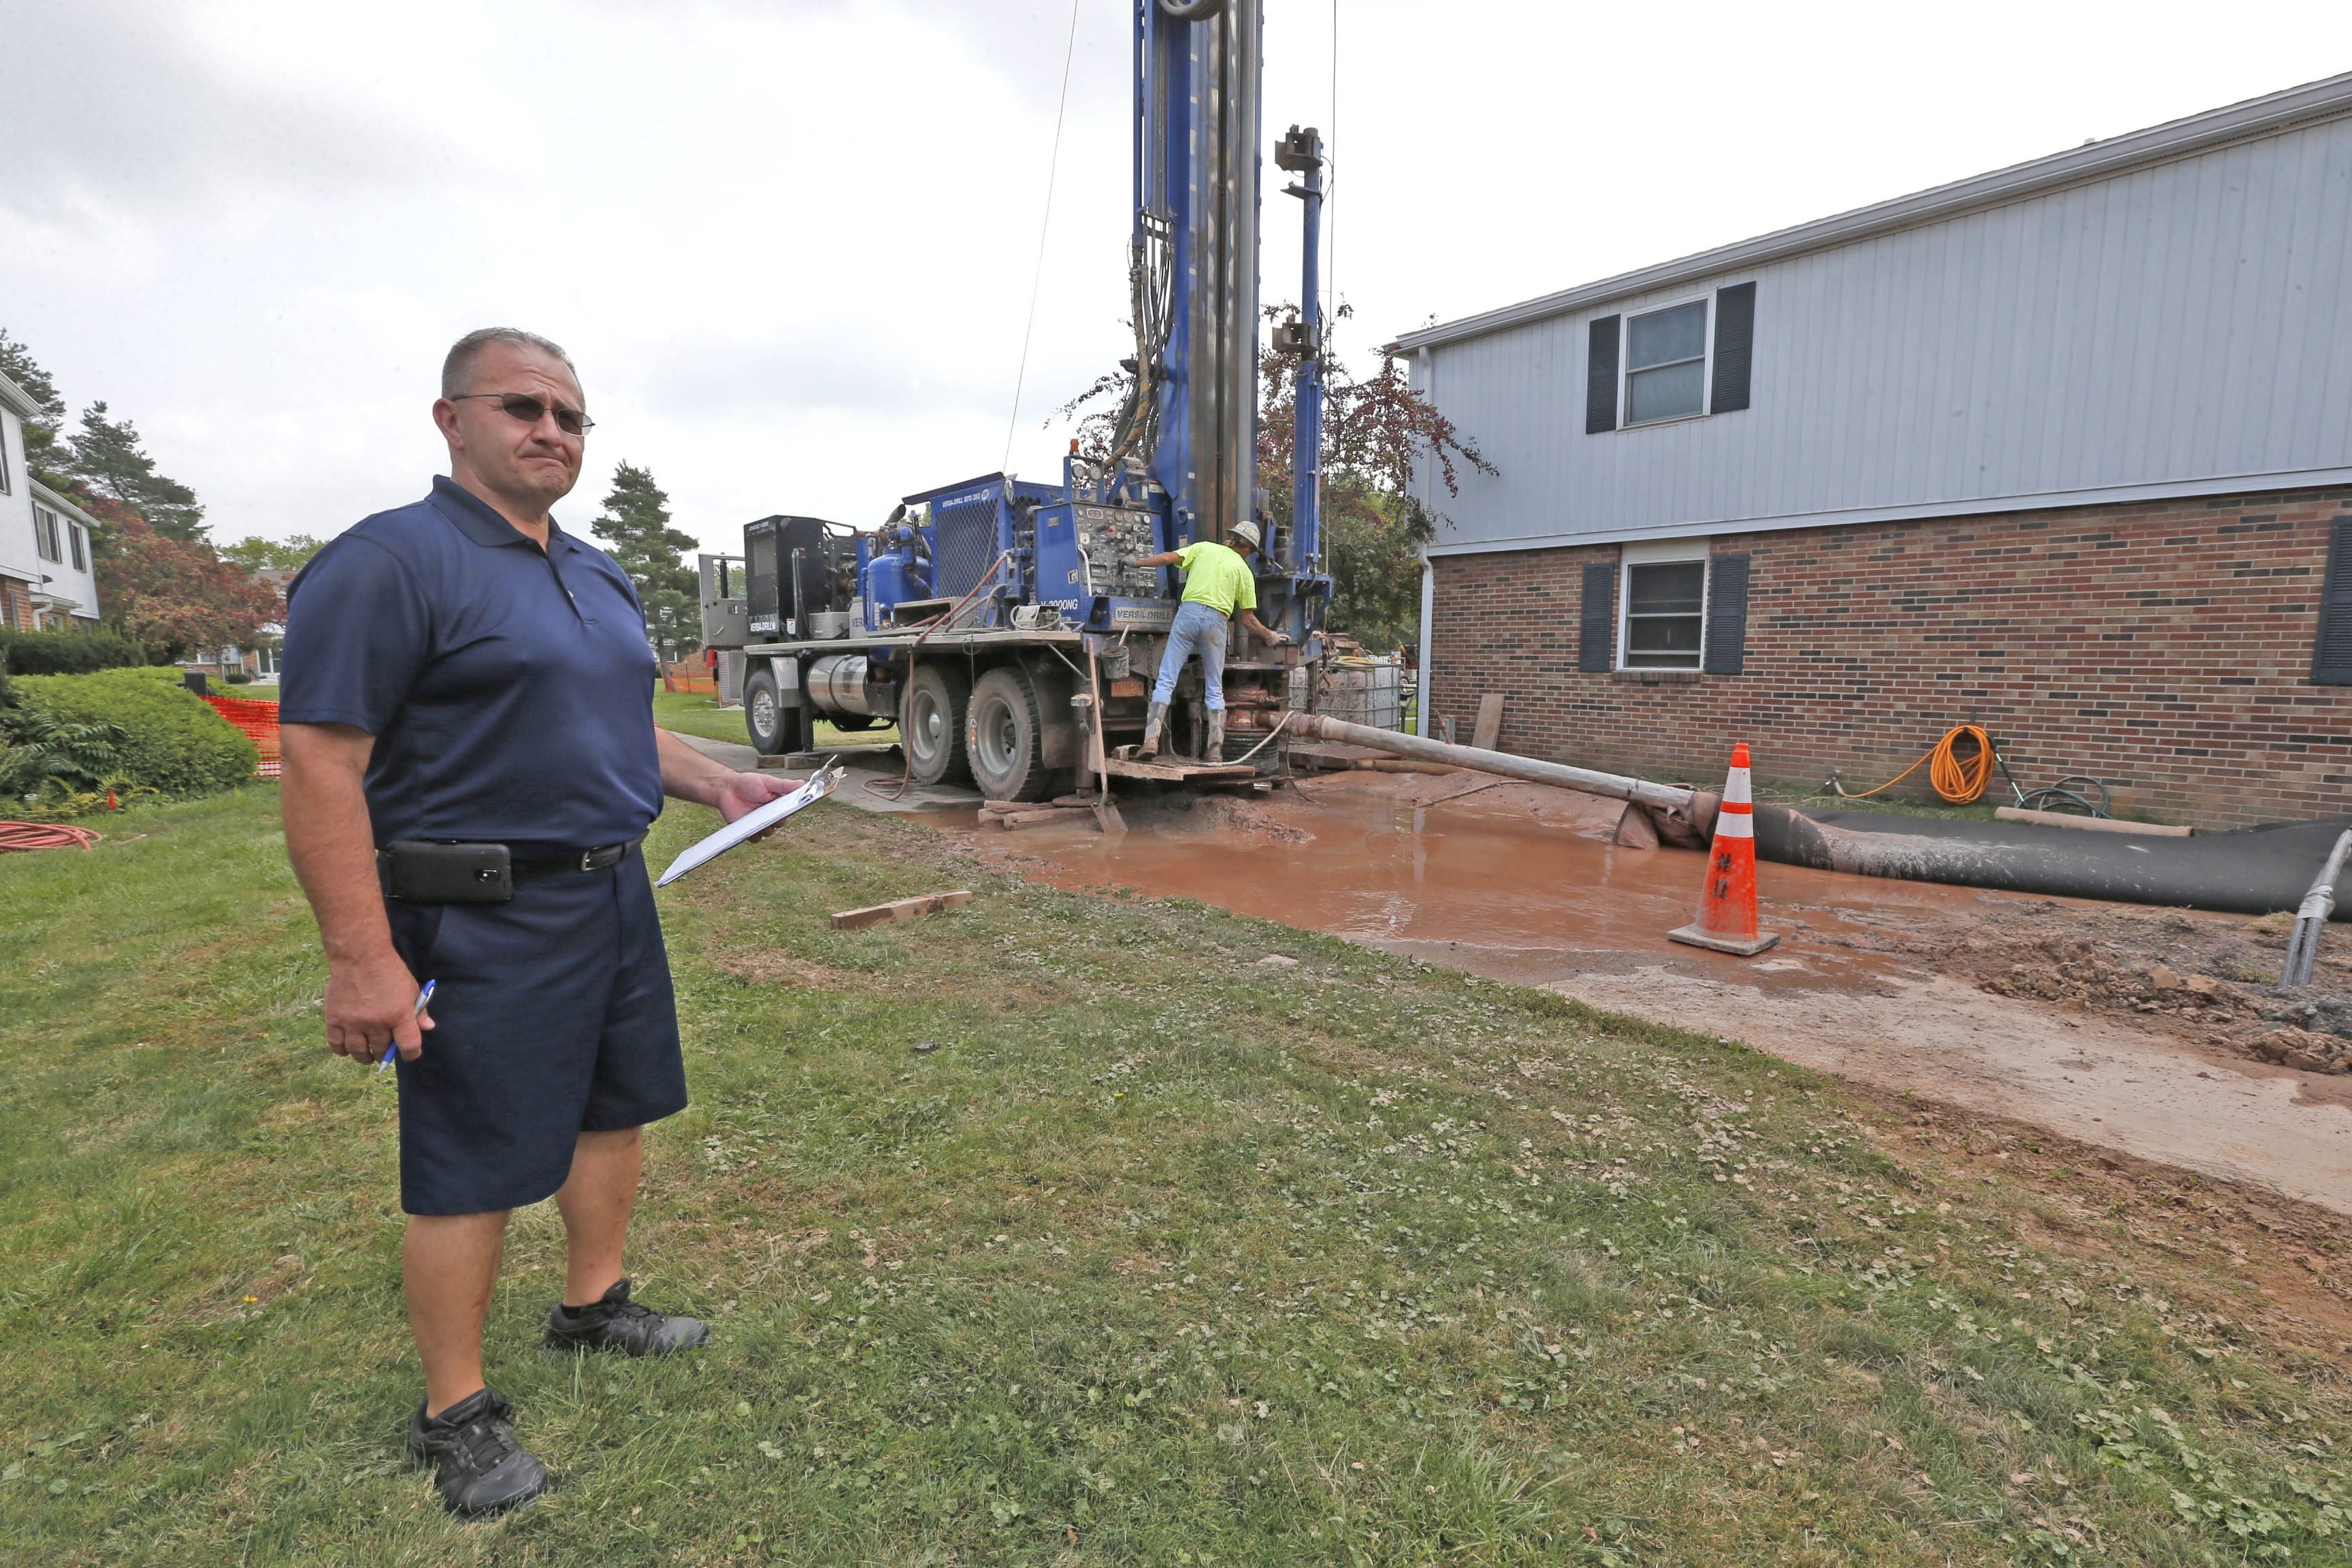 Lockport Housing Authority modernization coordinator Jeff Haag, left, monitors the progress as Kevin Bush of Nothnagle Drilling, Henrietta, works on the early phases of a geothermal heating and cooling system at Autumn Gardens.